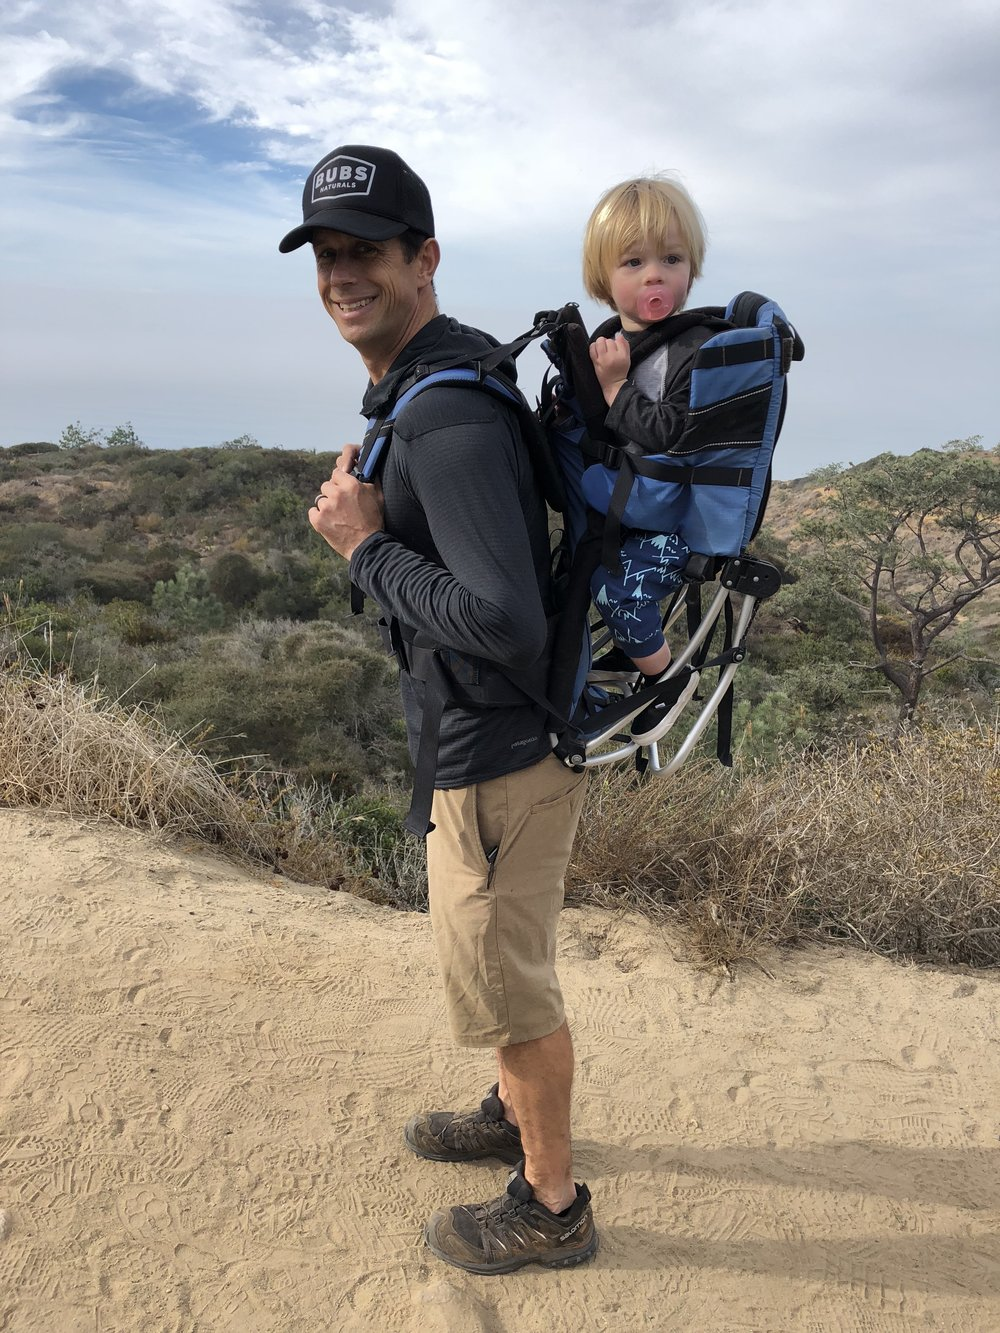 Happy Hikers - ps. don't forget snacks & water